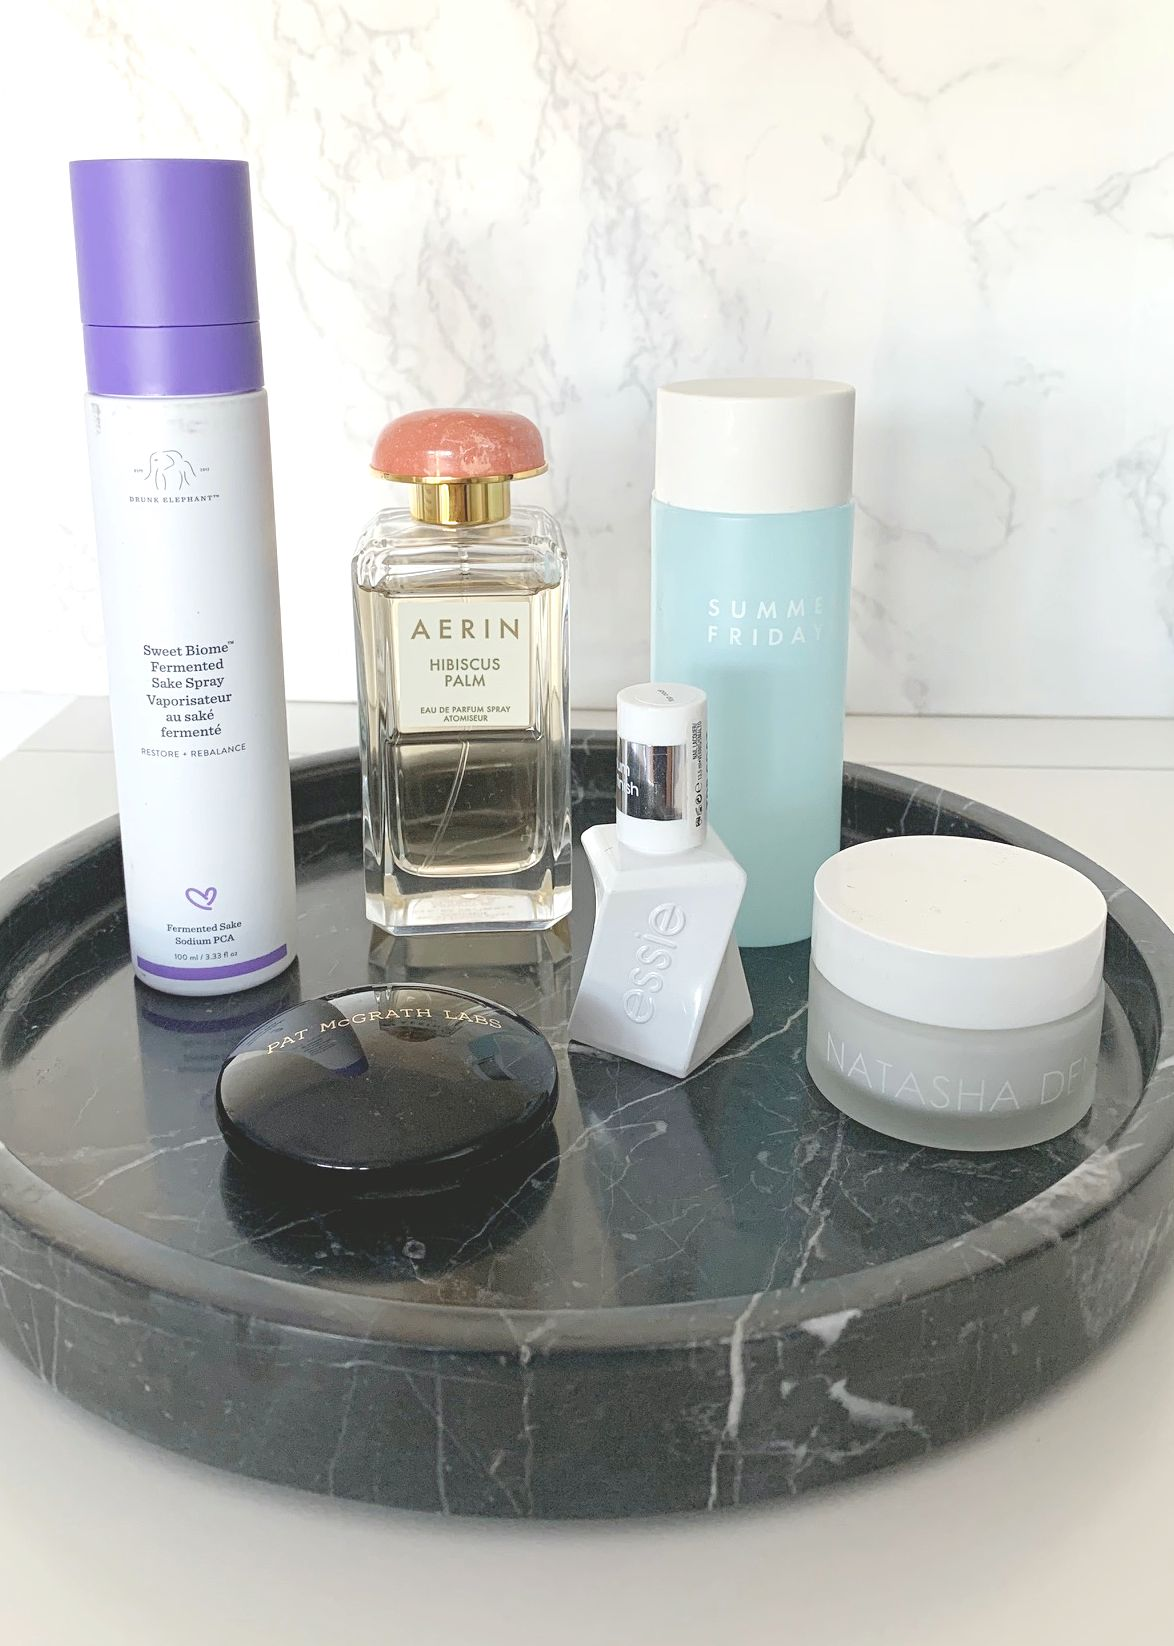 Some products that I have been loving and using on repeat in recent weeks